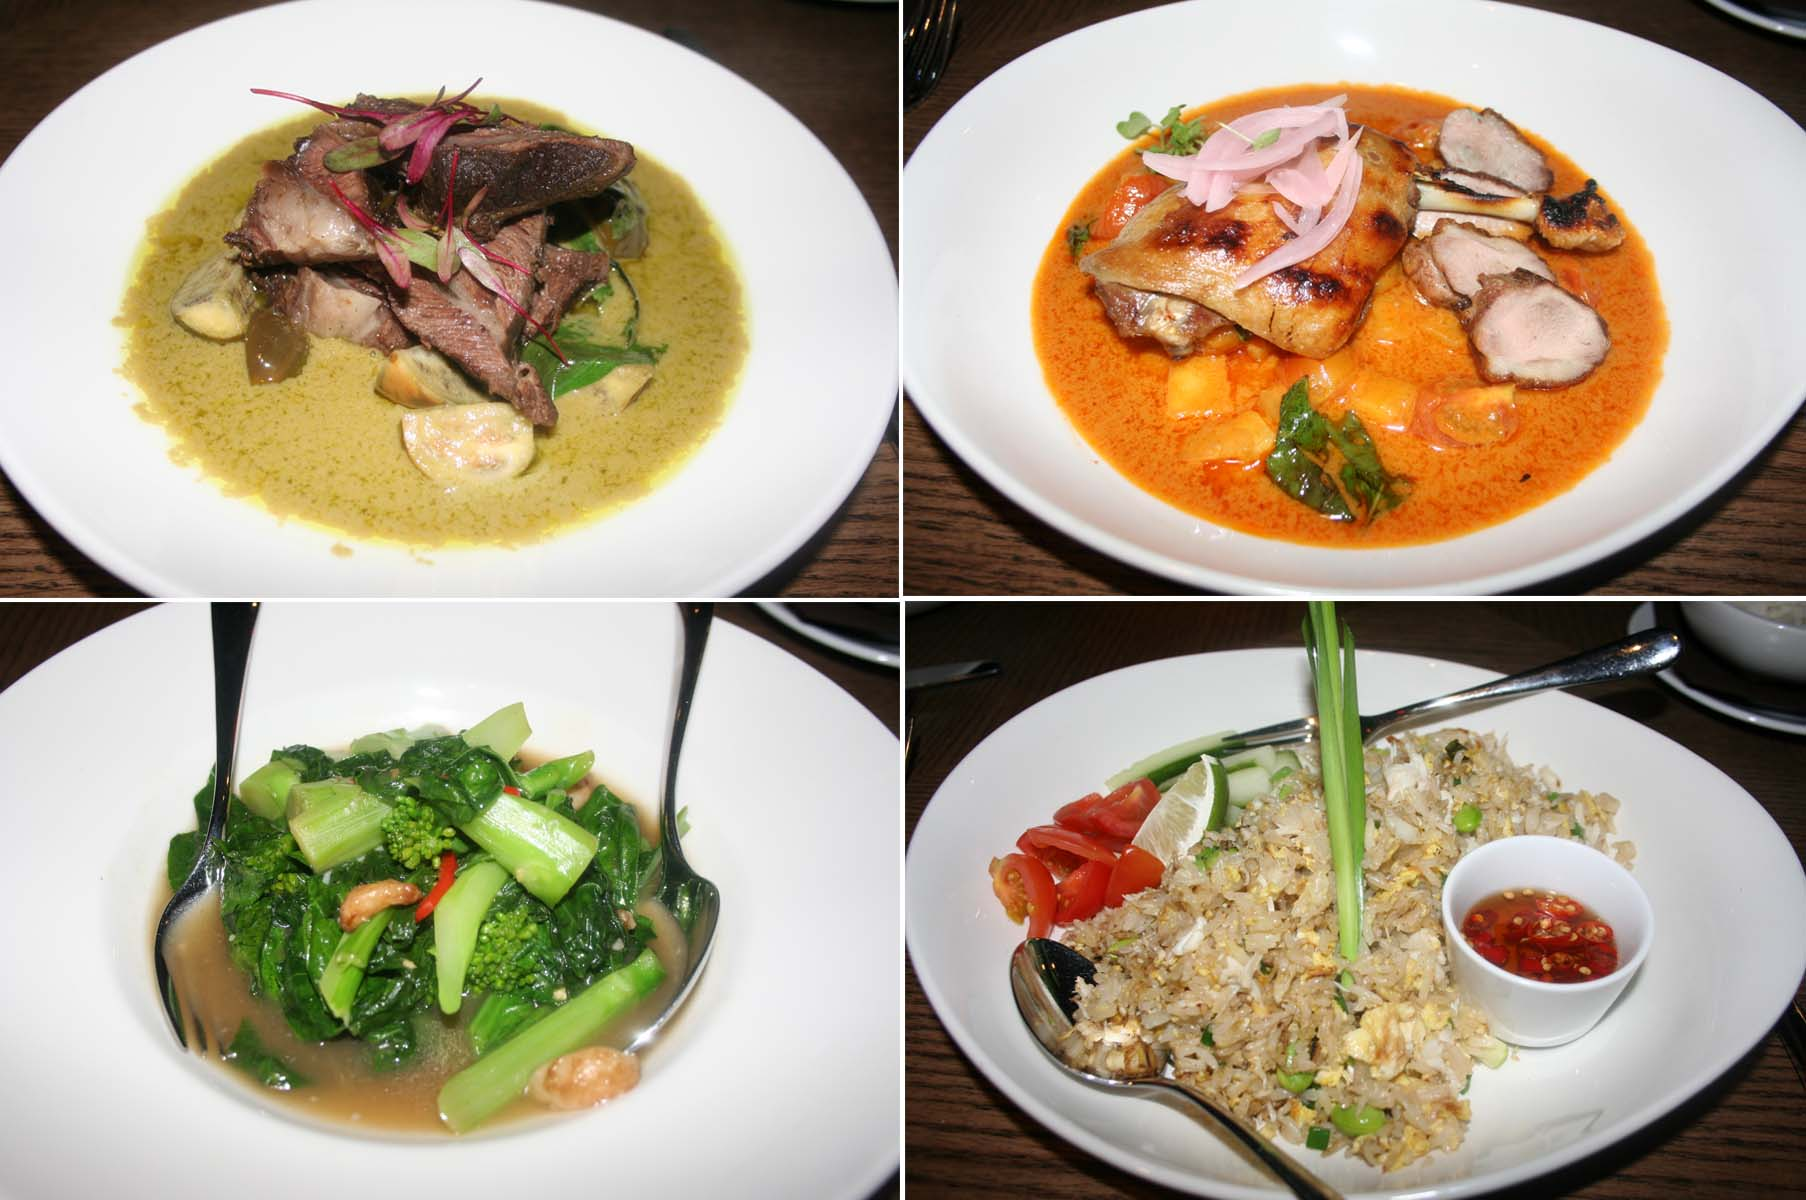 The braised beef cheek in green curry (clockwise from top left), duck two-ways, crab stir-fried rice and stir-fried kale with ginger. (Photo: Mark Heckathorn/DC on Heels)